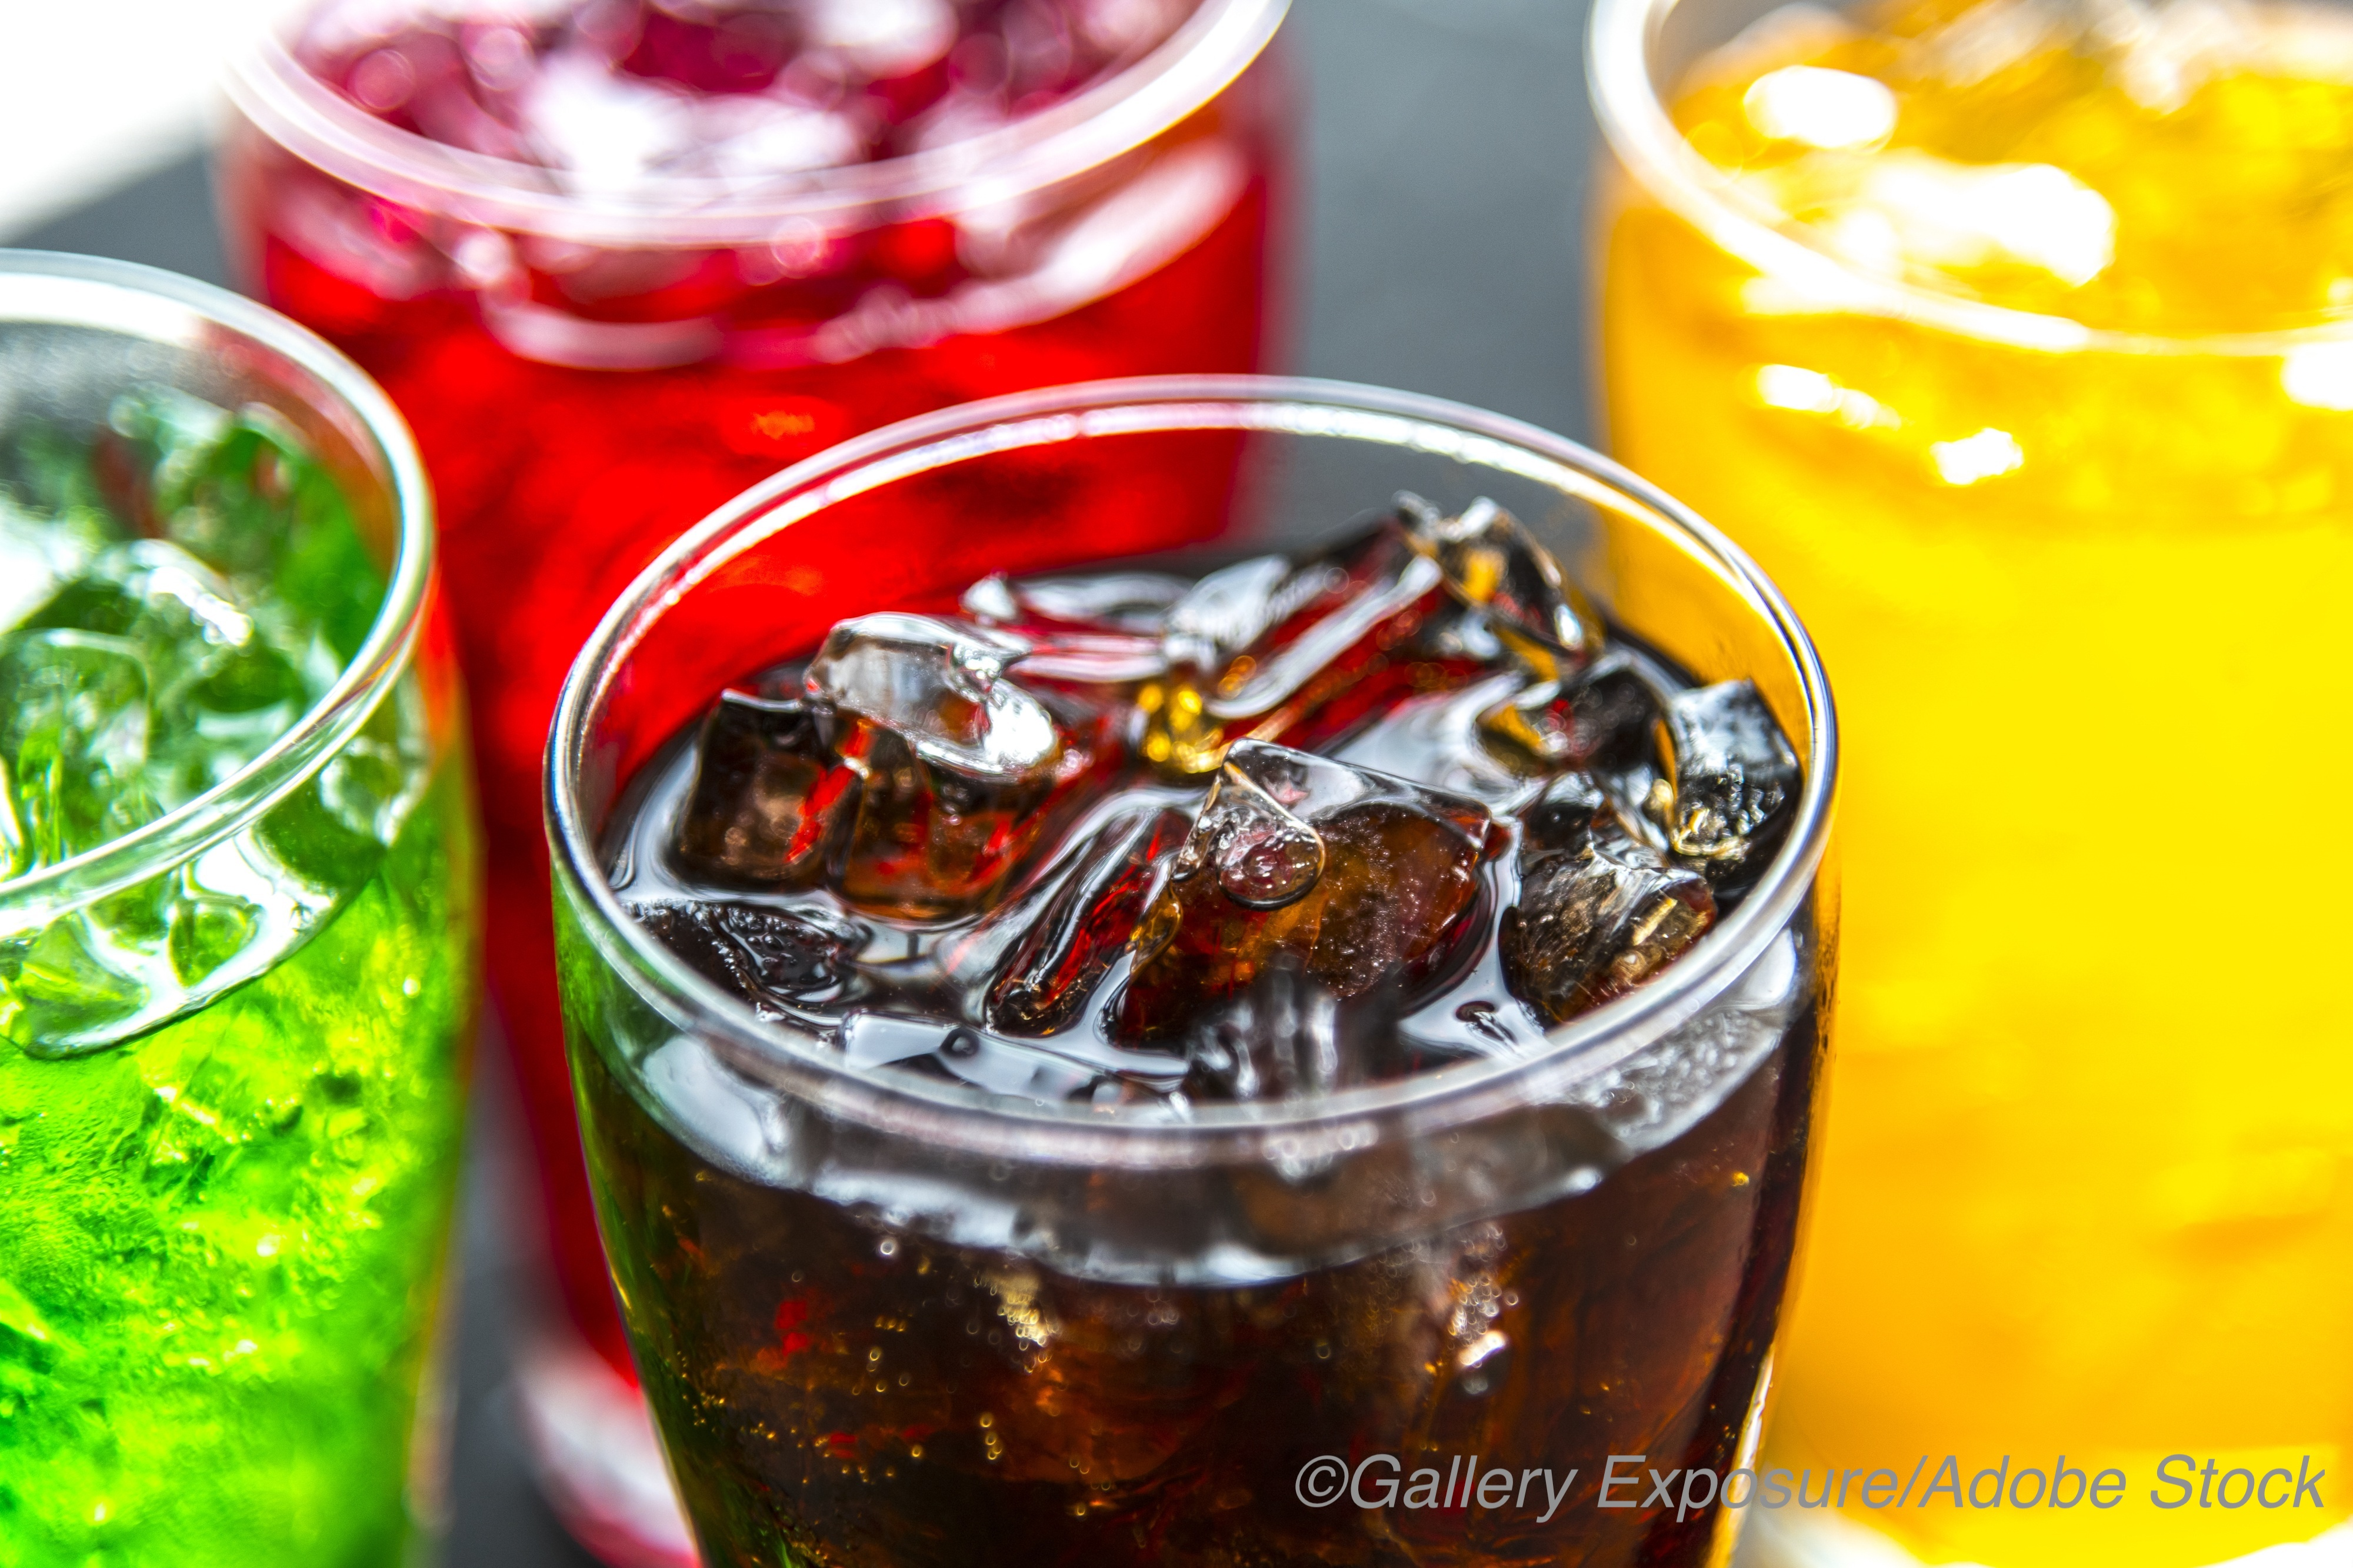 Sugar-Sweetened Beverages Still Bad, But Other Fructose Foods Might Be OK